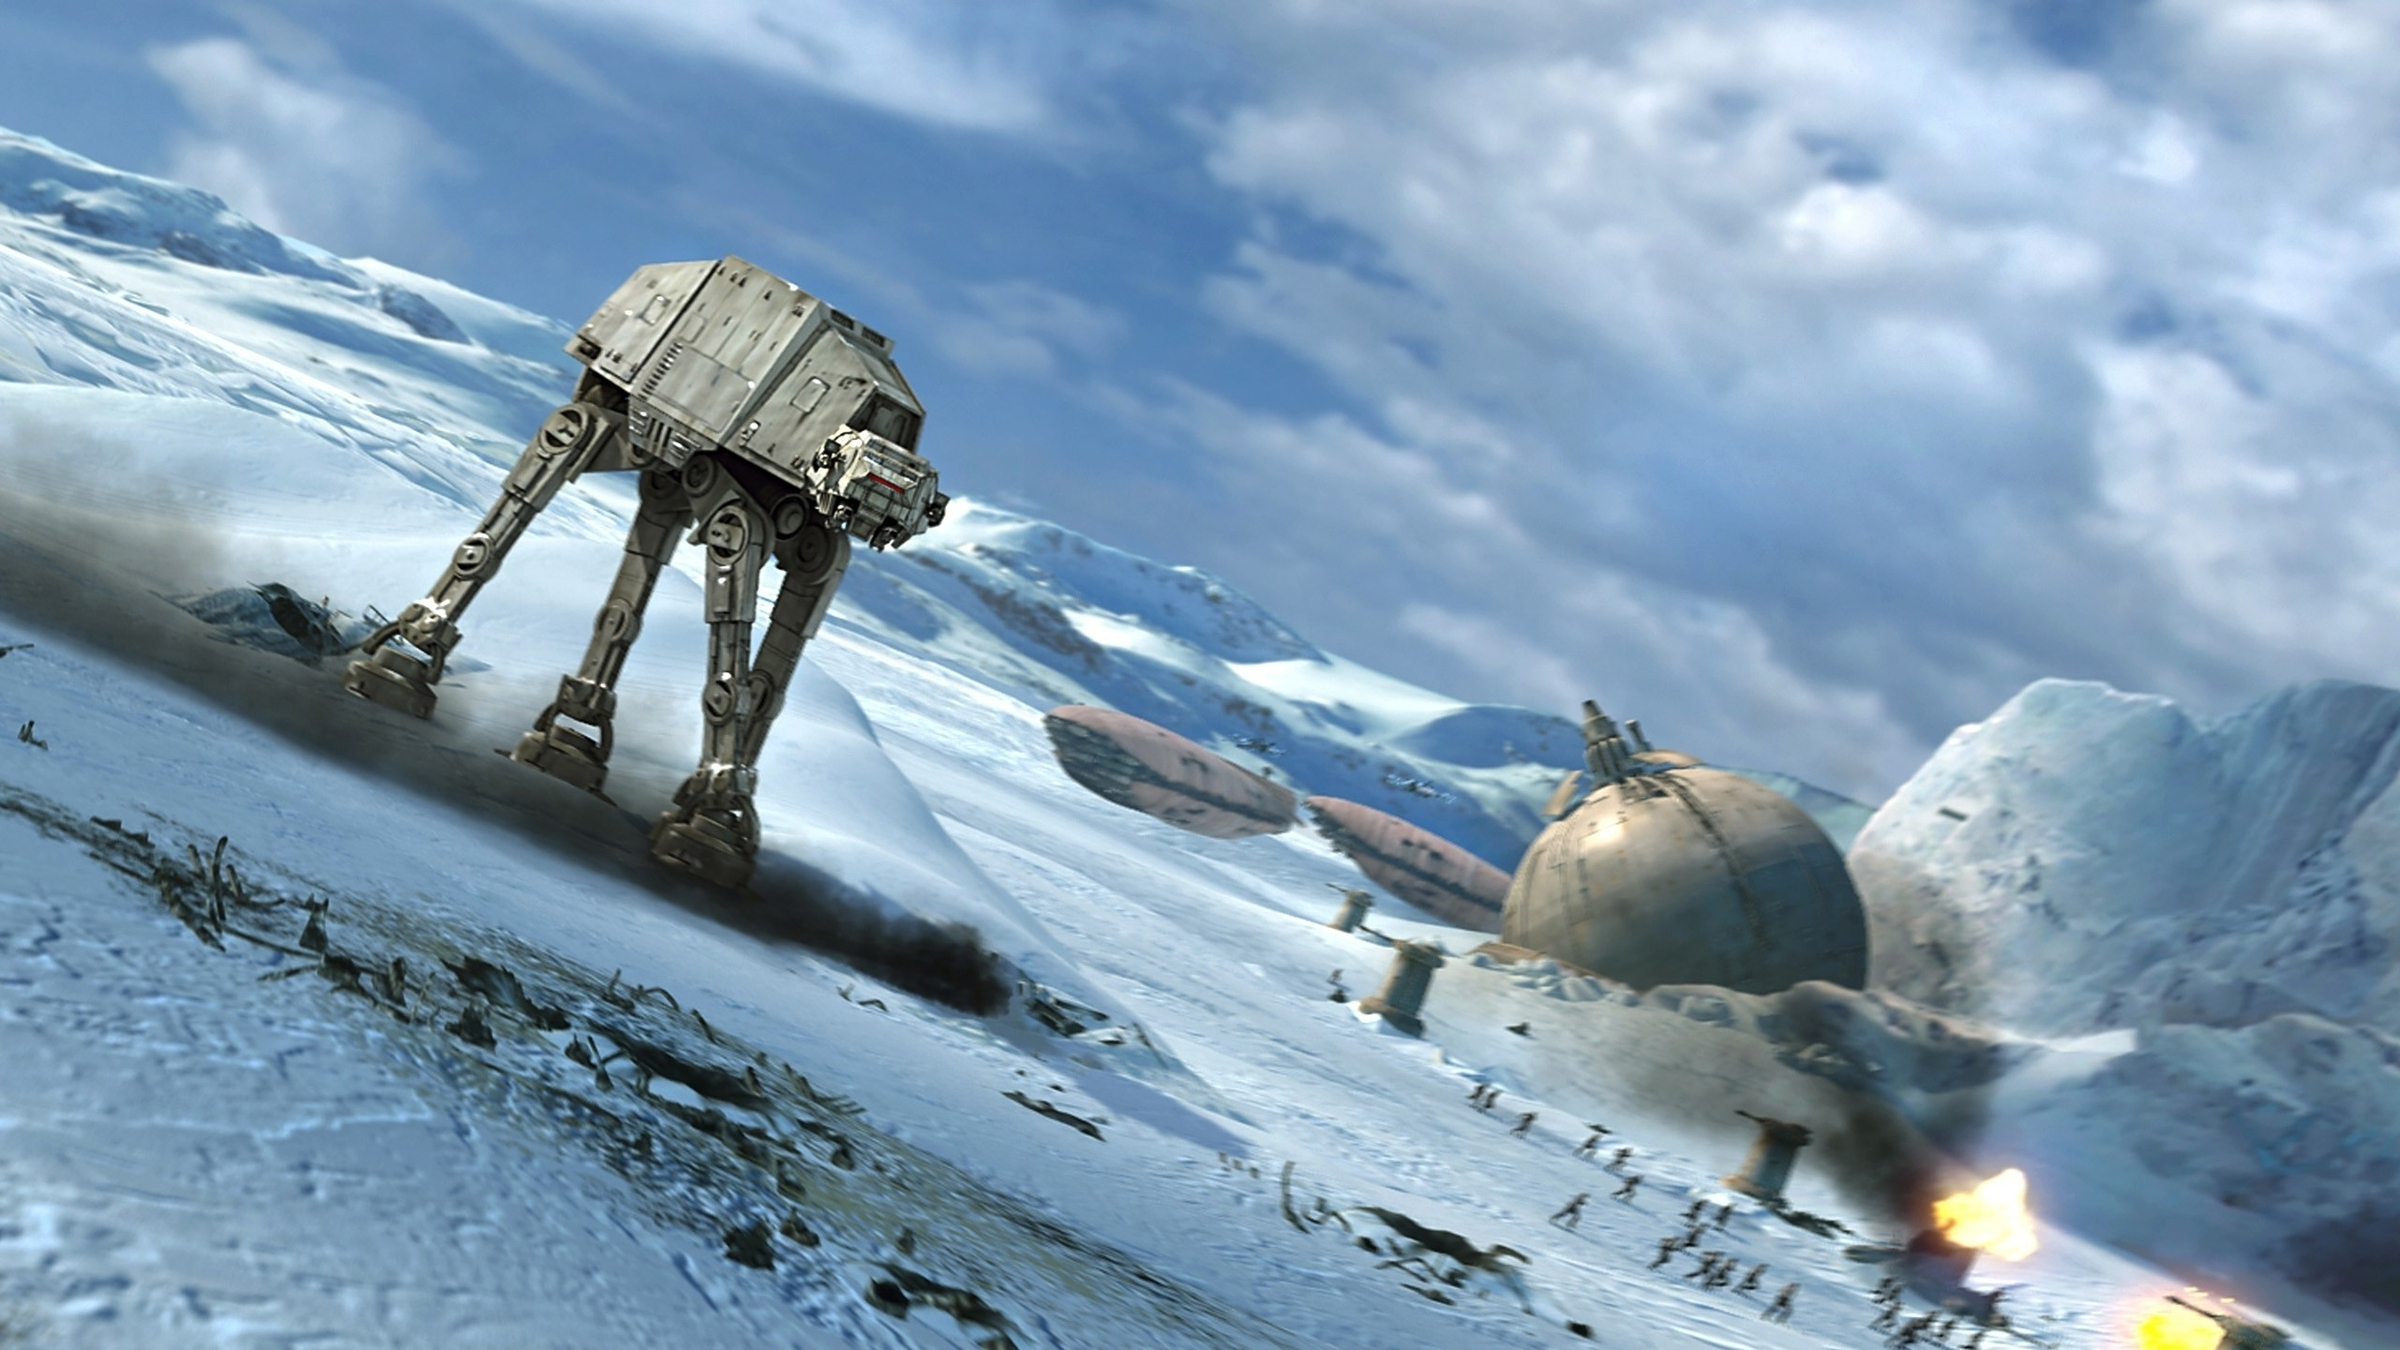 Star wars hoth battles atat (2400x1350)